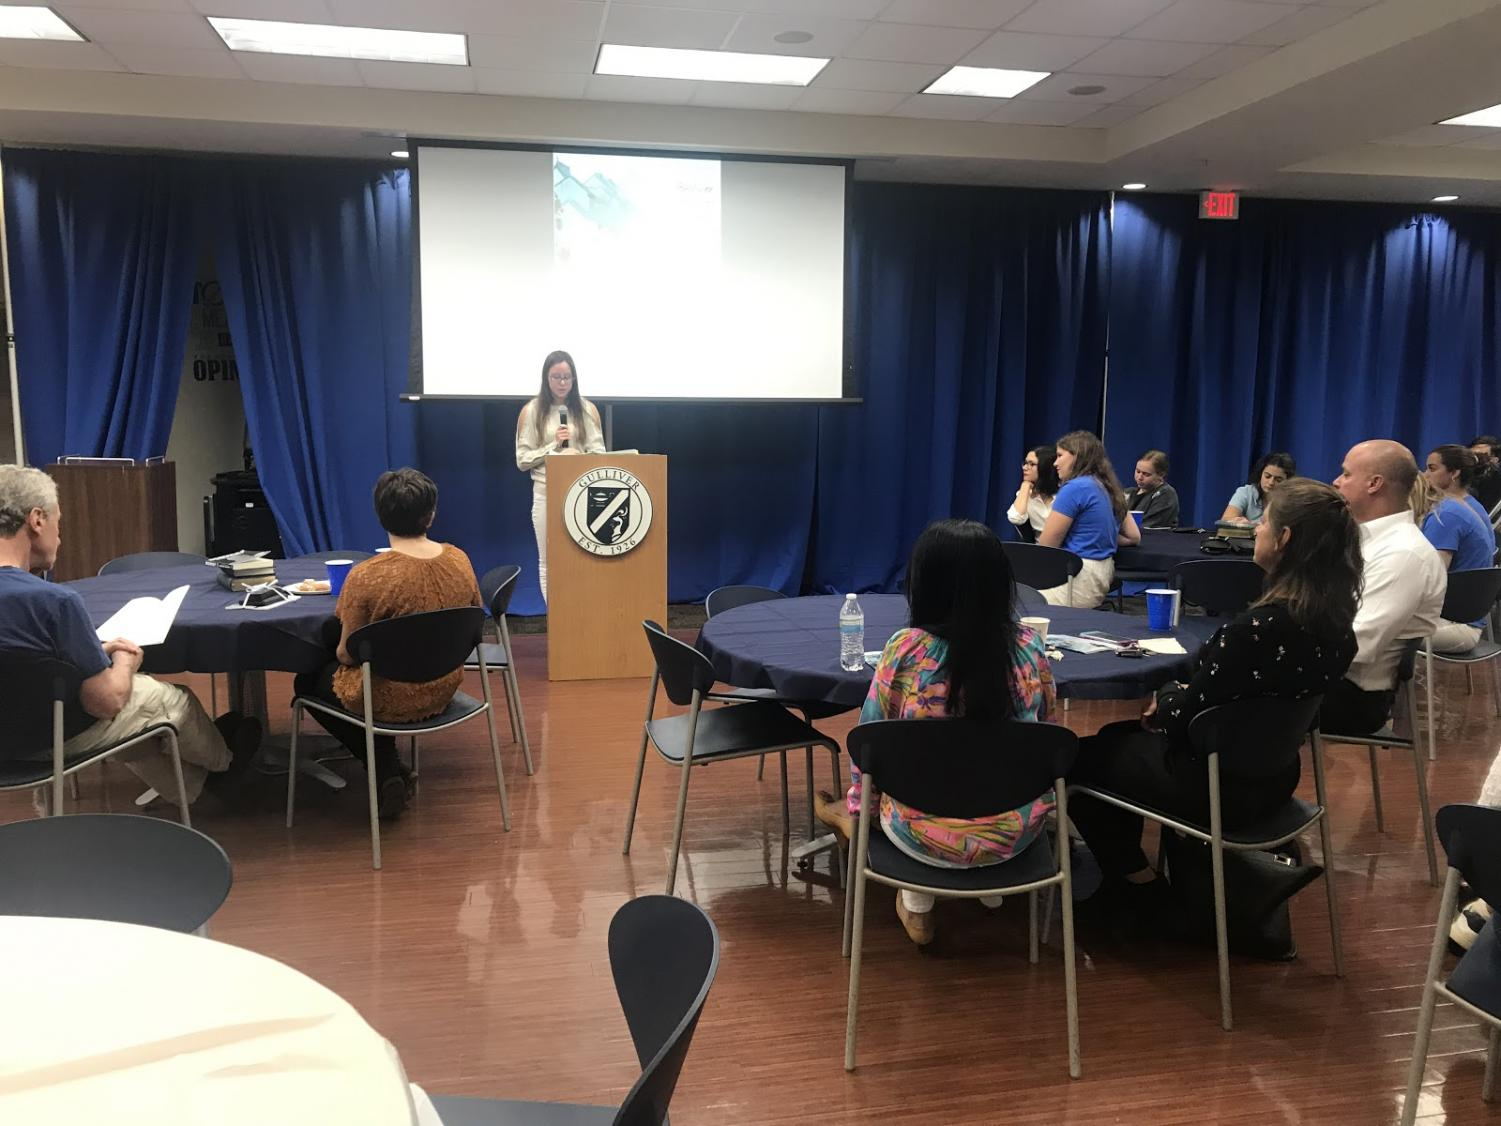 Senior Olivia Hernandez reads an excerpt from her most recent novel at Gulliver Writes. The NEHS board selected a wide variety of student-written pieces to feature. The event took place in the student union on Apr. 10. Photo by Lara Russell-Lasalandra